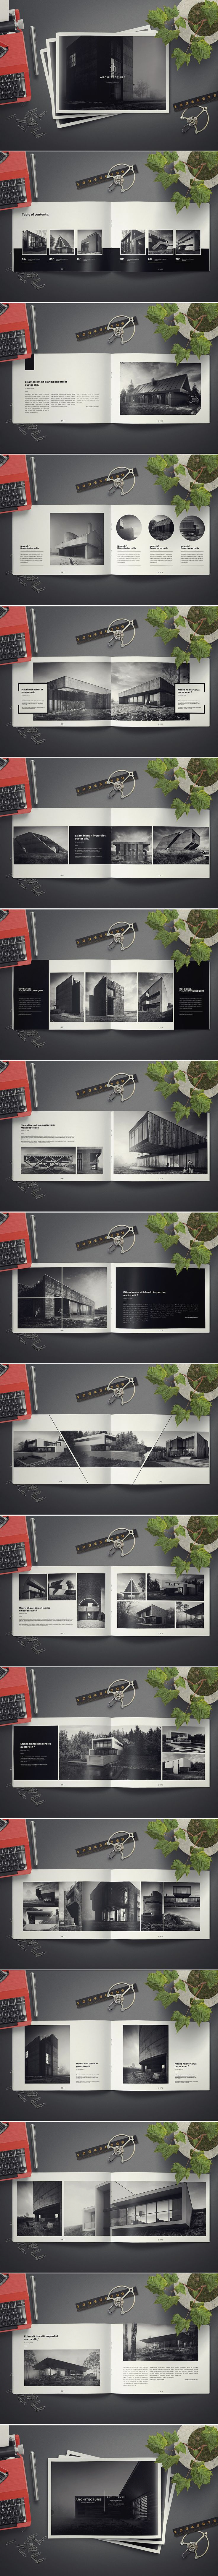 Architecture Landscape Brochure on Behance                                                                                                                                                     More